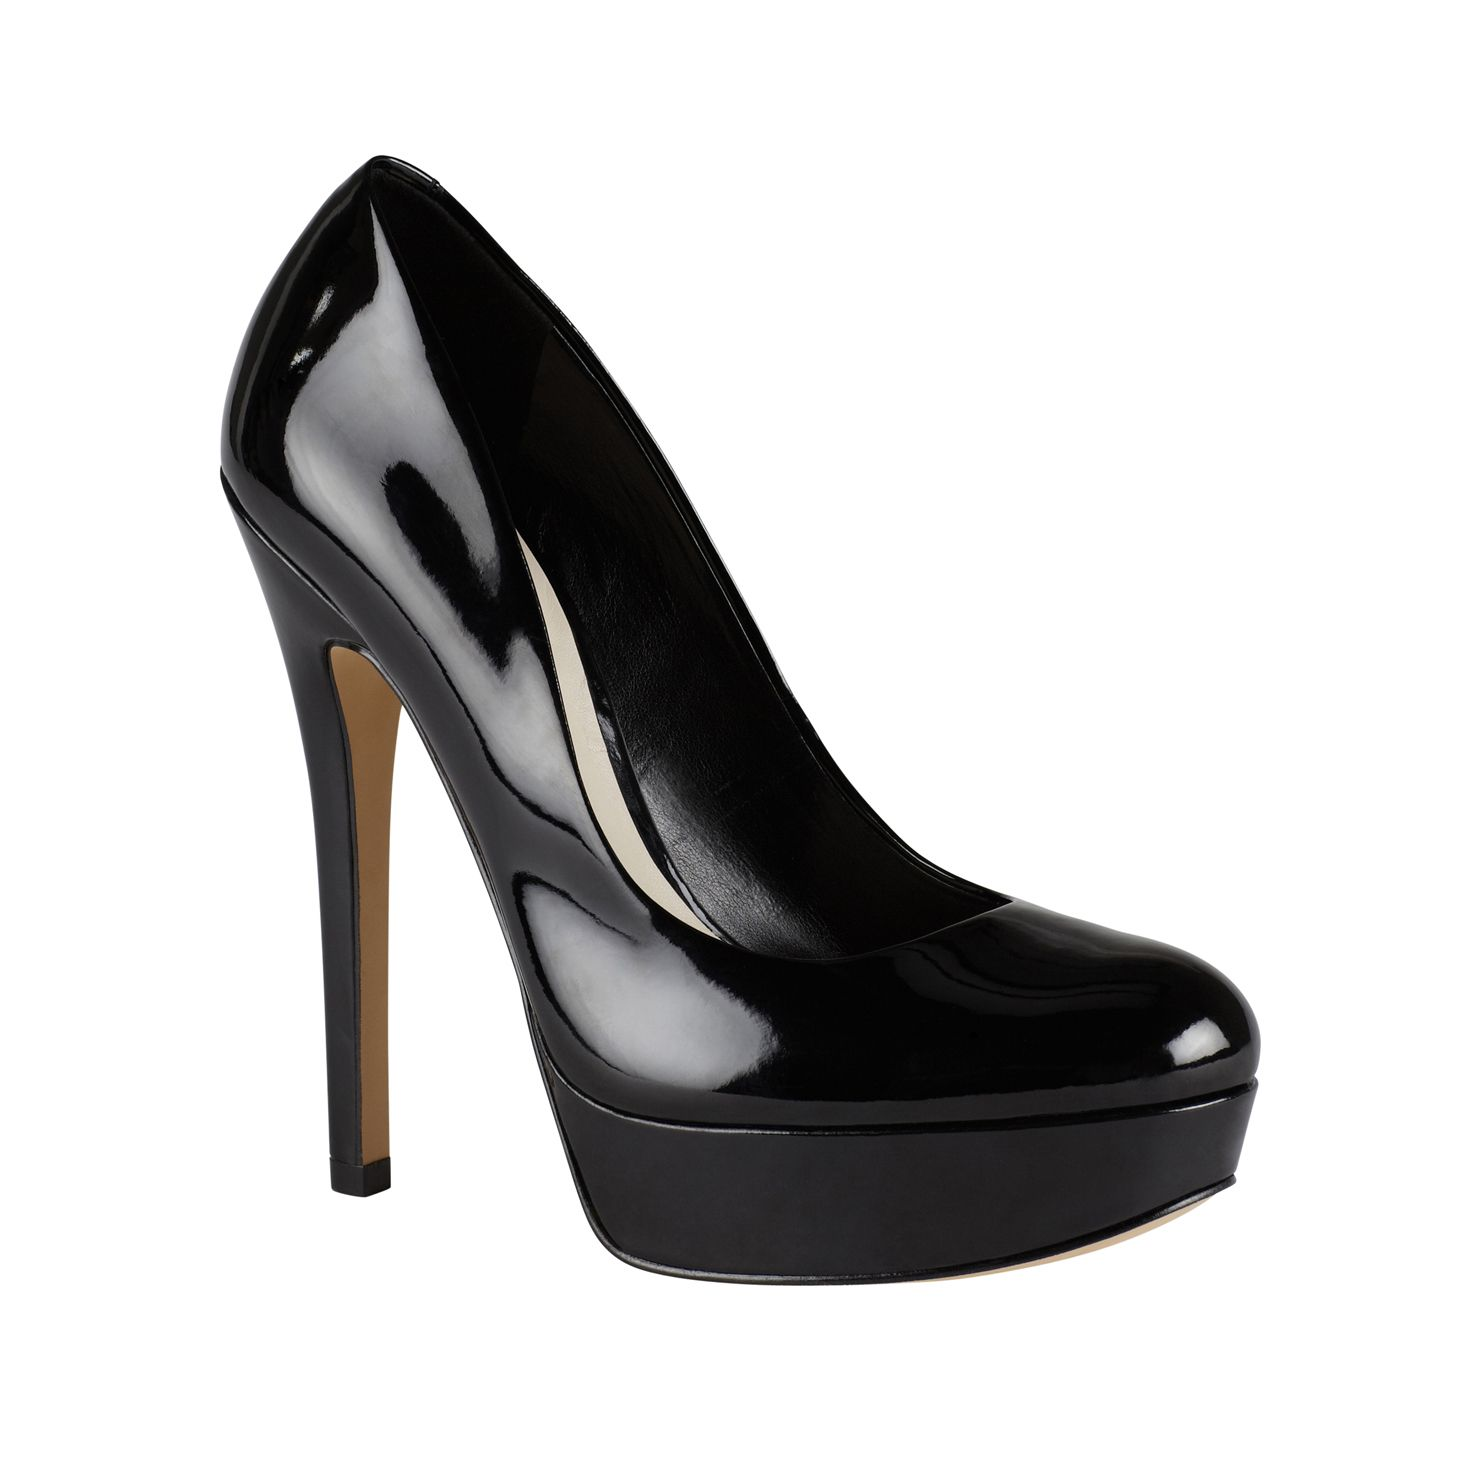 Crixia almond toe platform court shoes